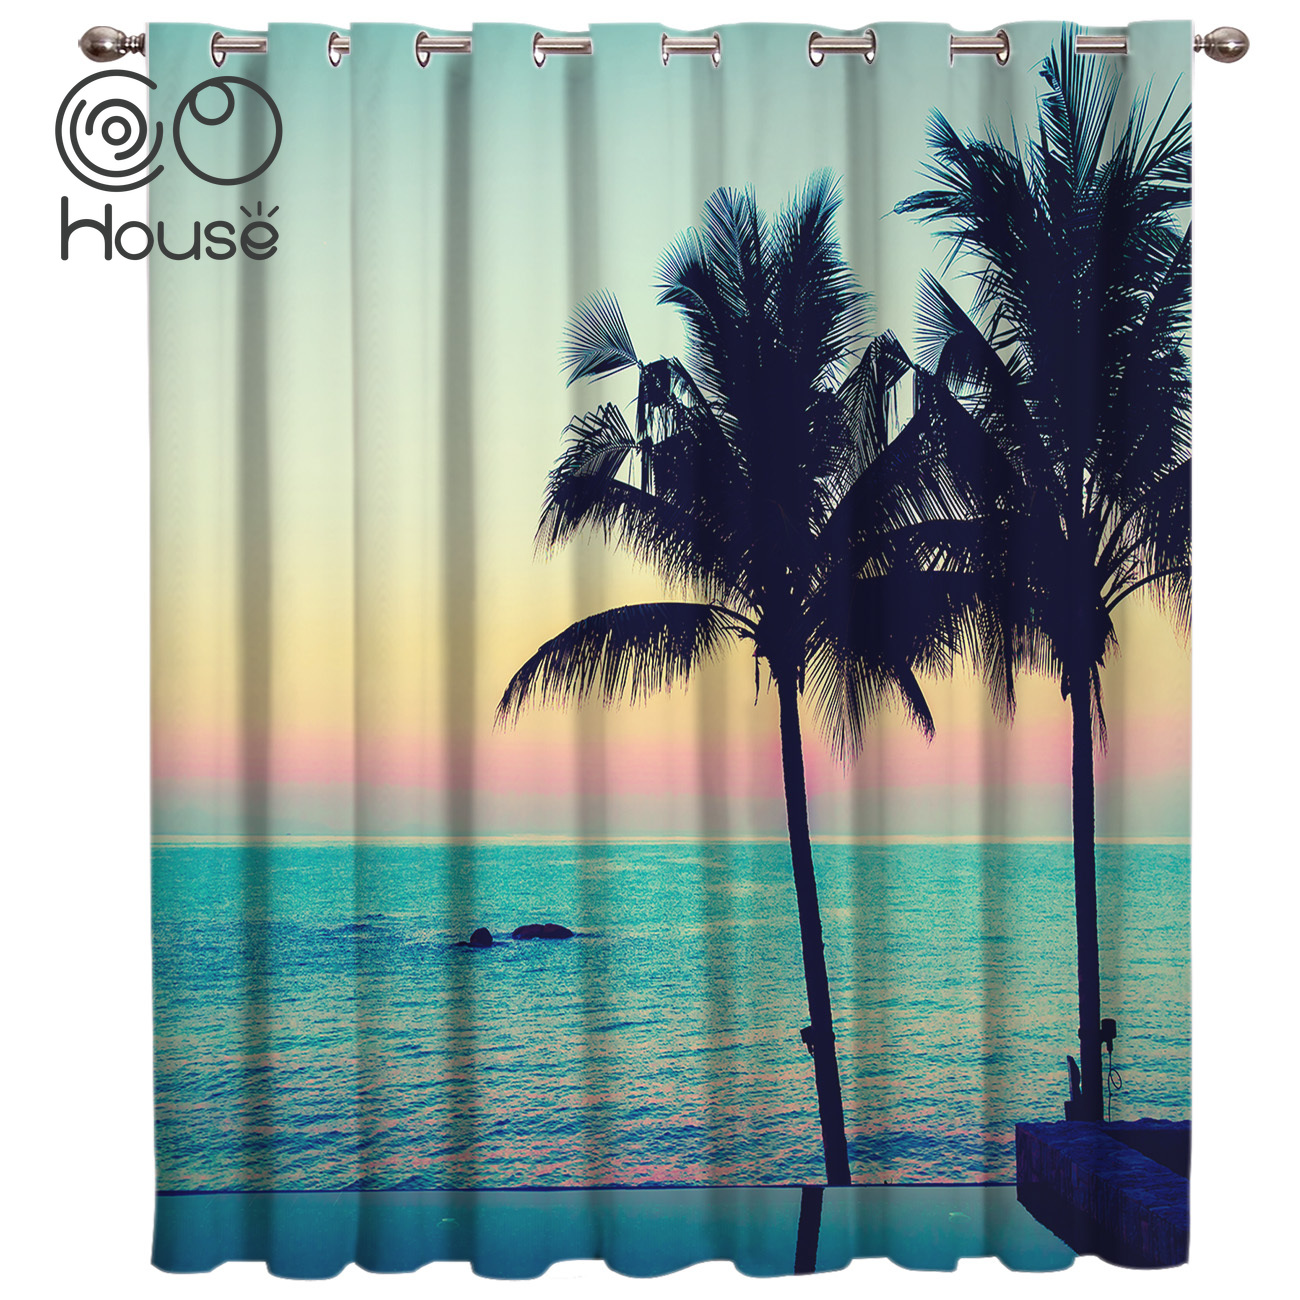 COCOHouse Coconut Tree Beach Blackout Outdoor Kitchen Decor Curtain Panels With Grommets Outdoor Curtains Window Draperies